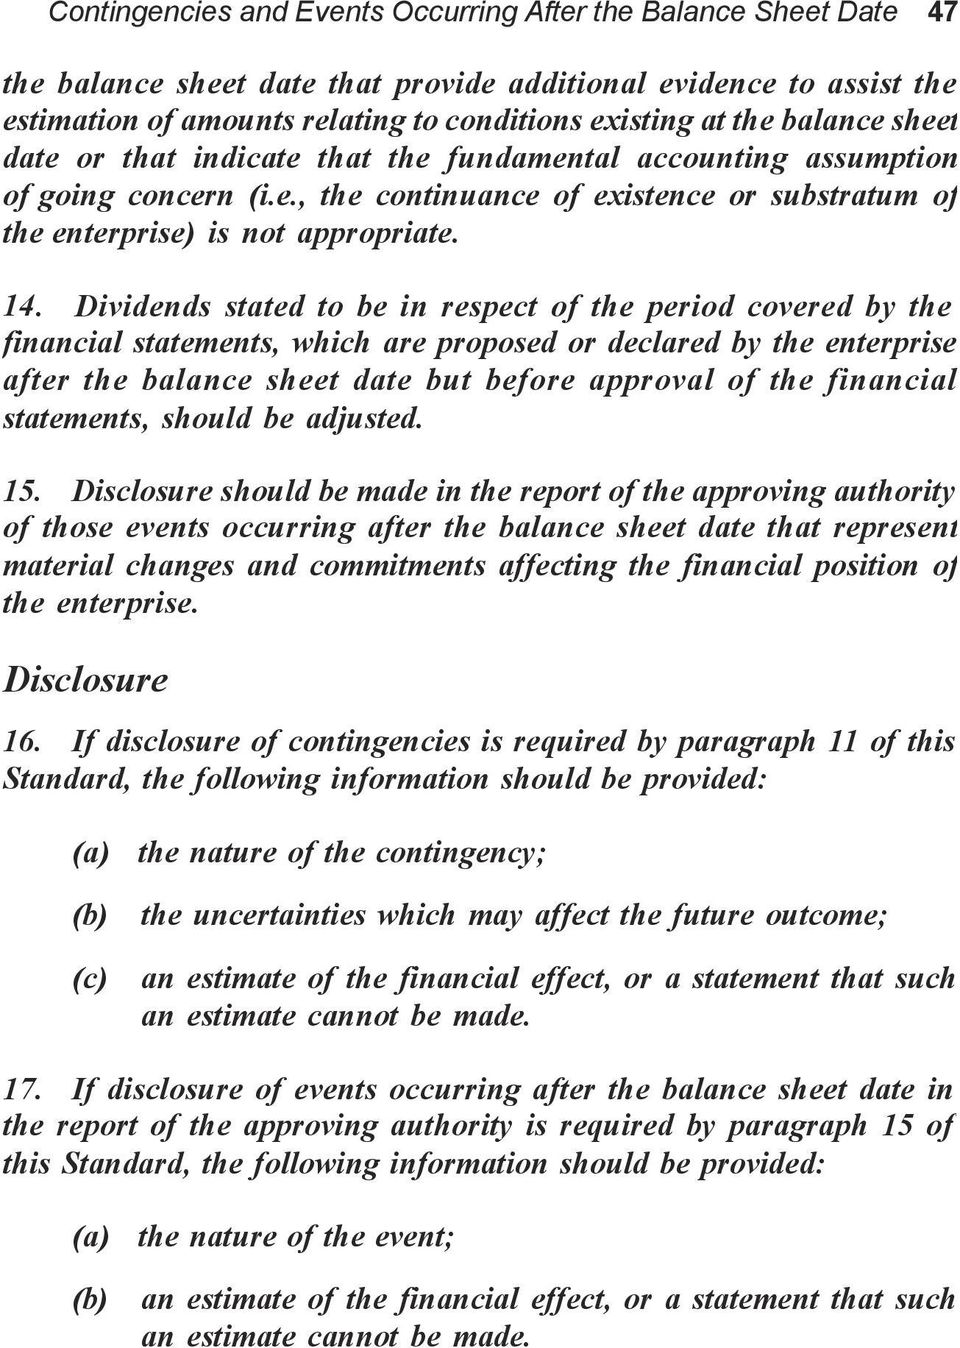 Dividends stated to be in respect of the period covered by the financial statements, which are proposed or declared by the enterprise after the balance sheet date but before approval of the financial